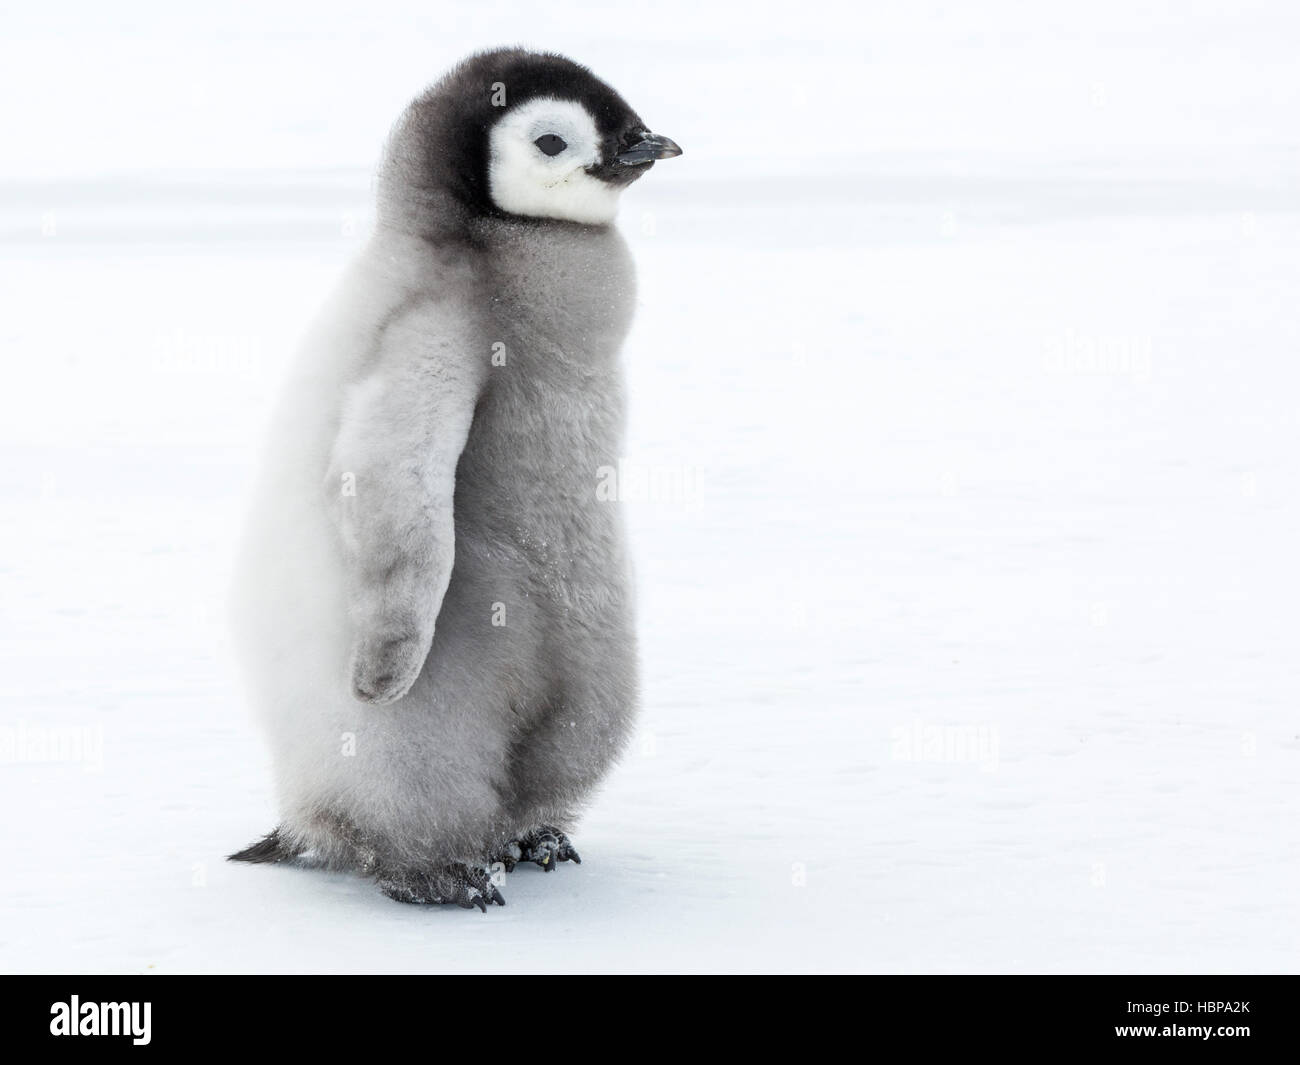 Emperor Penguin chick on the frozen Weddell Sea - Stock Image